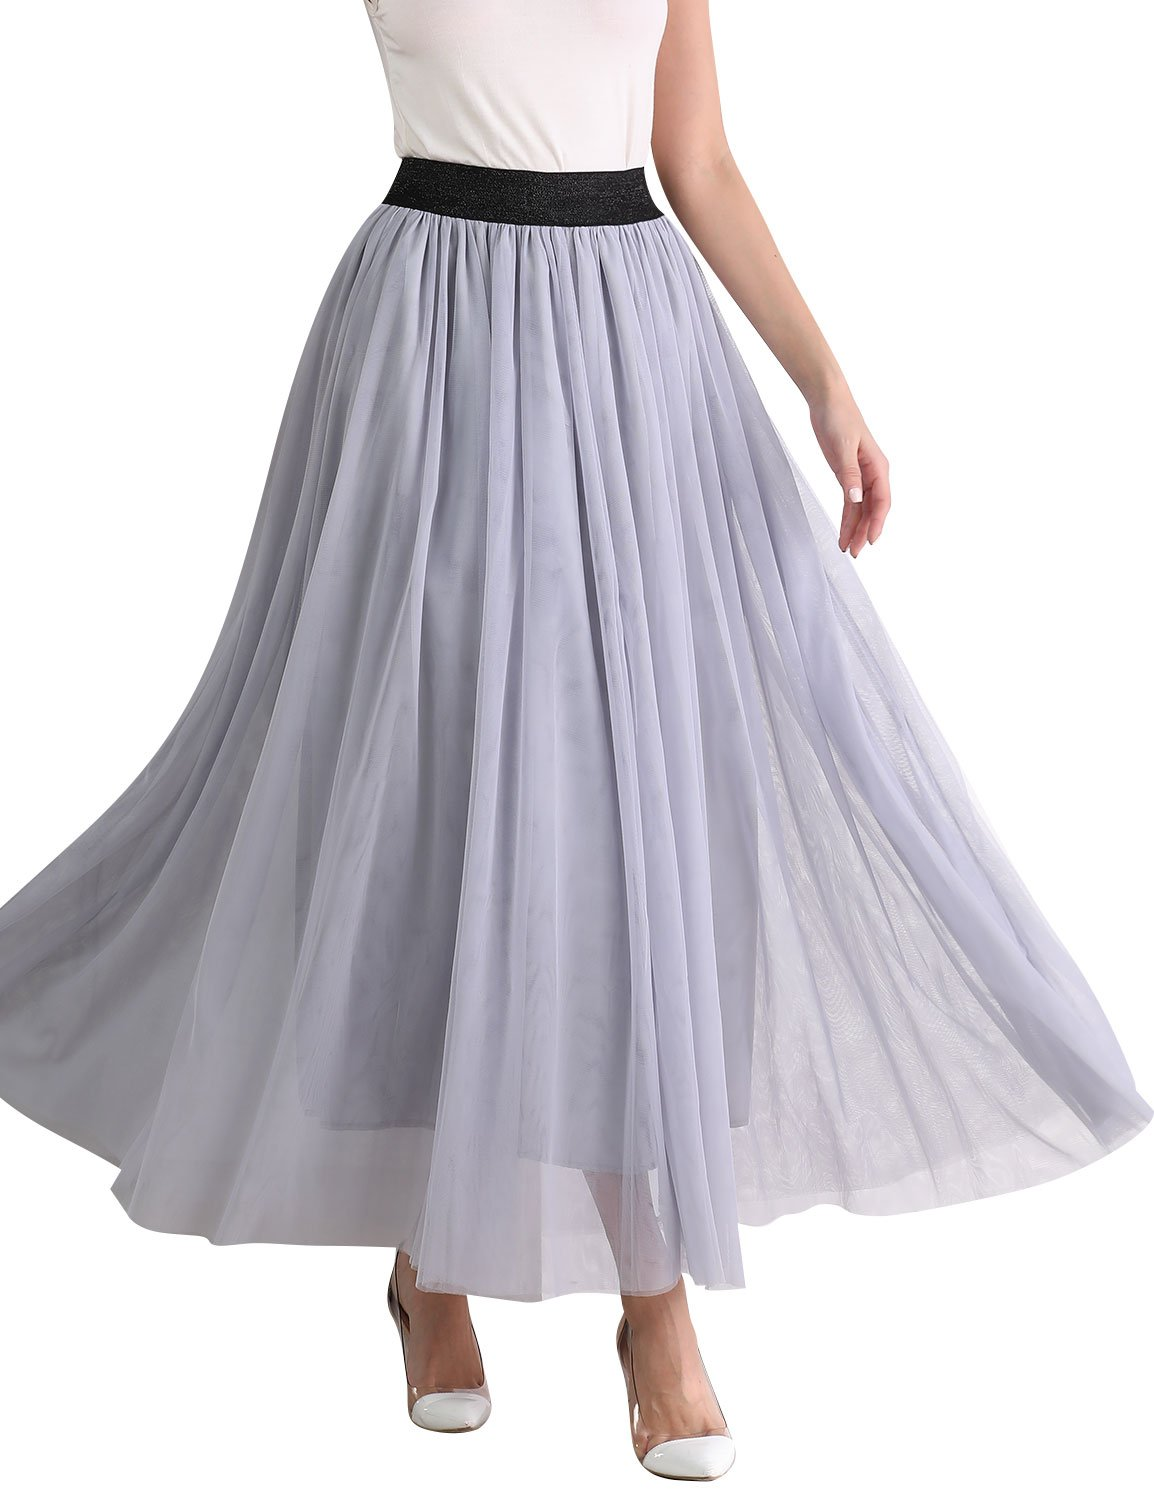 Ezcosplay Women High Waist Solid Multi Layer Tulle Pleated Maxi Long Swing Skirt